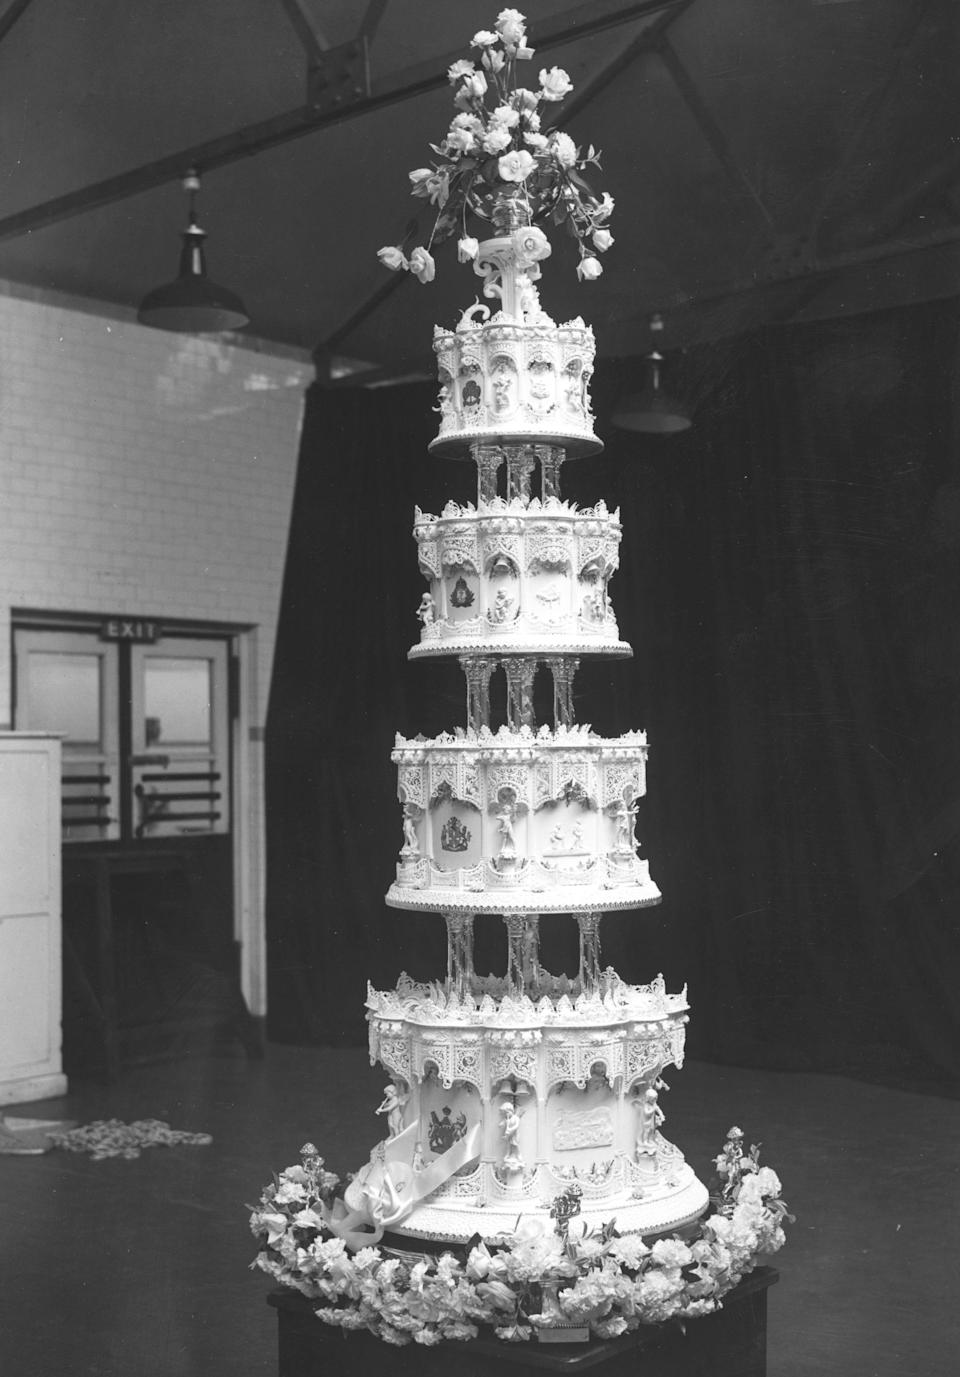 The 9 foot-high wedding cake.